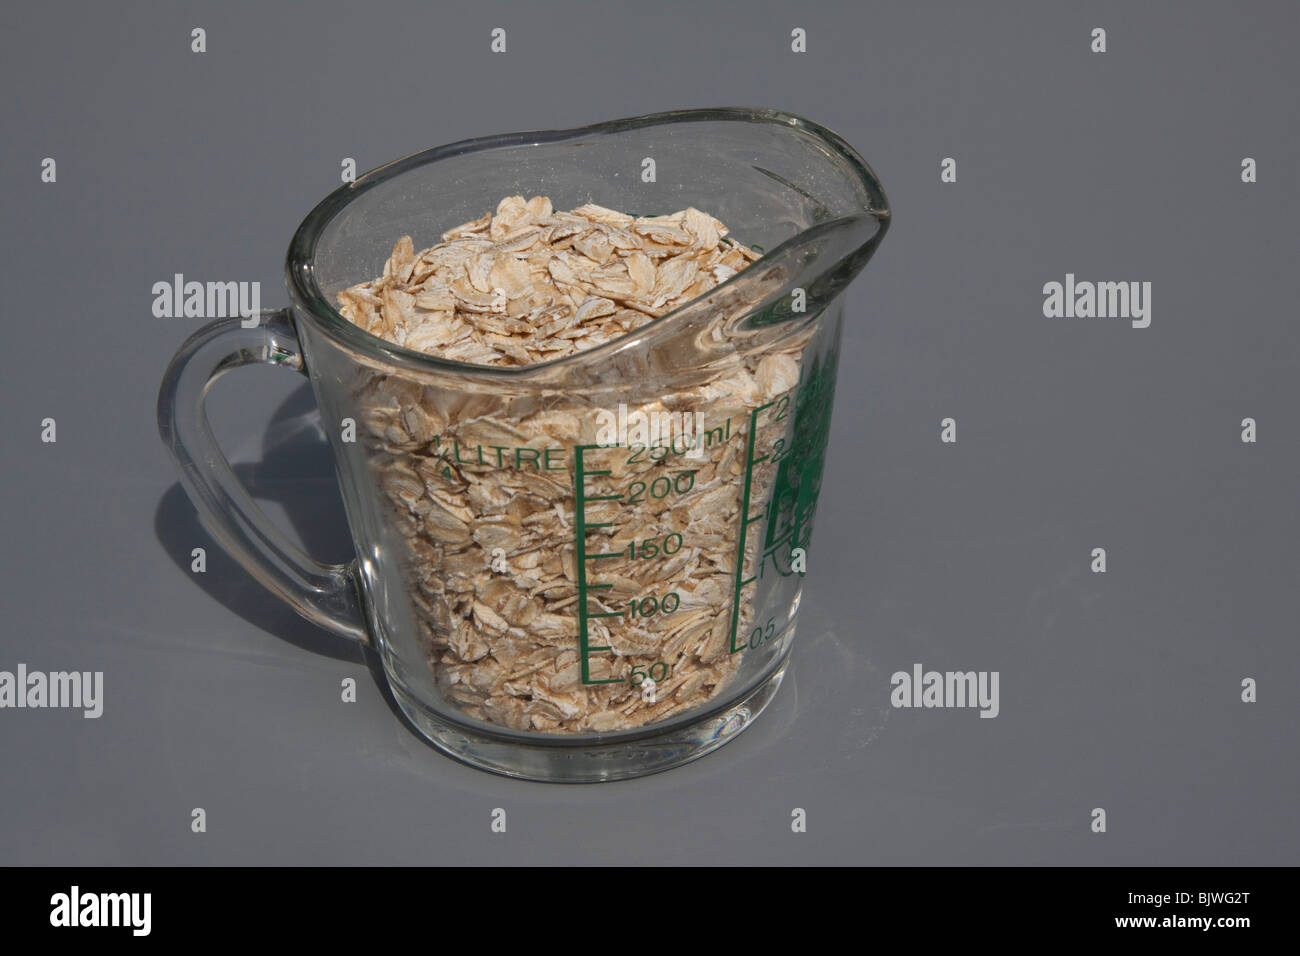 Dry Oatmeal in measuring cup - Stock Image